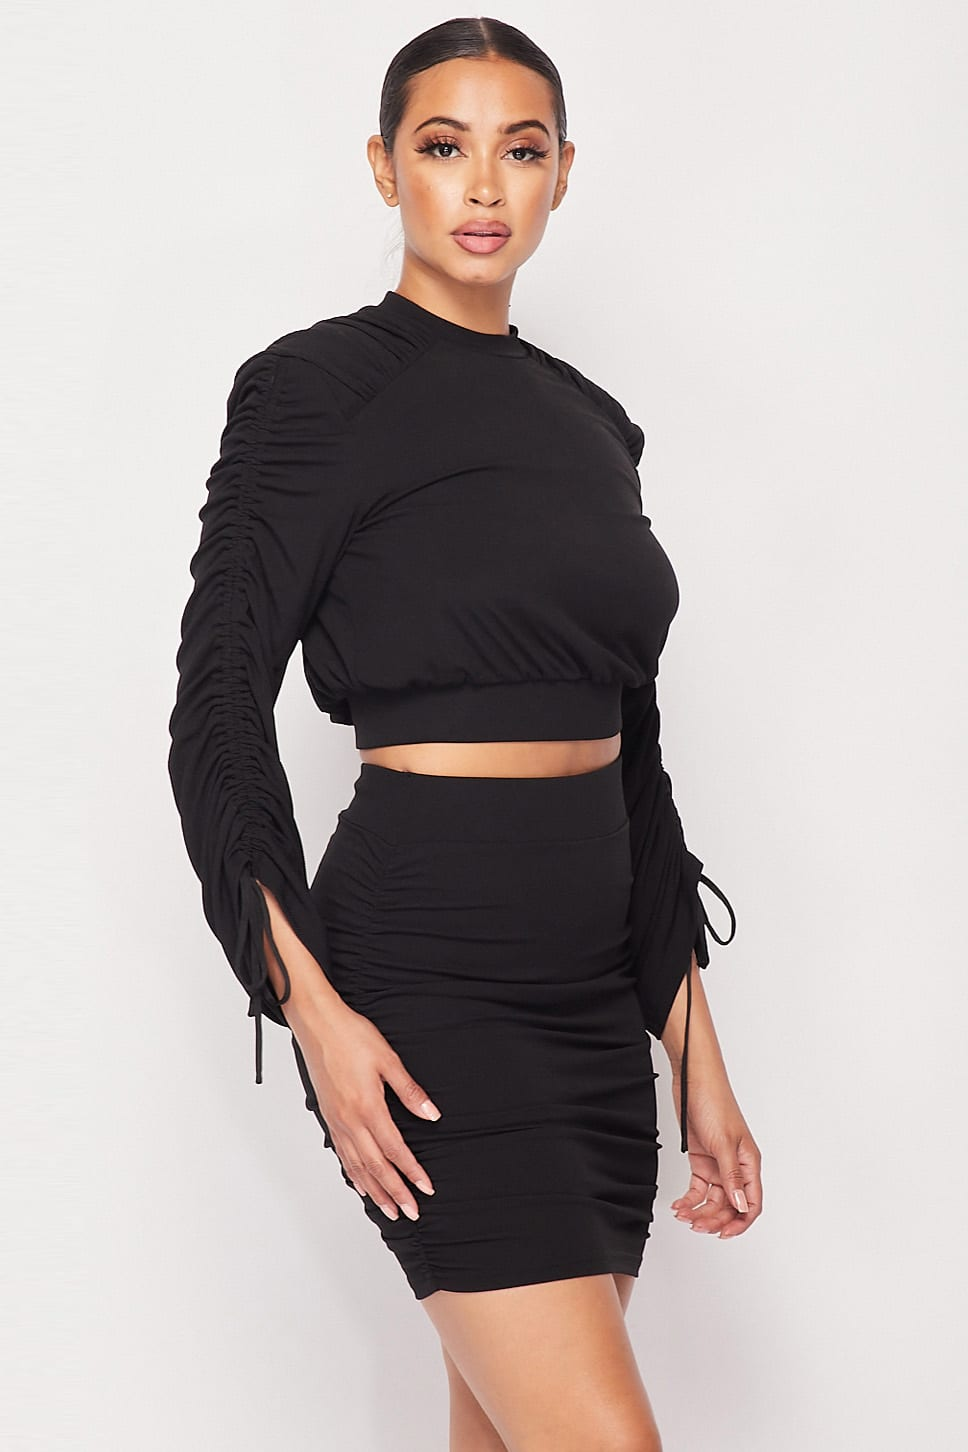 Black Ruched Long Sleeve And Skirt Set - Shopninaruchi